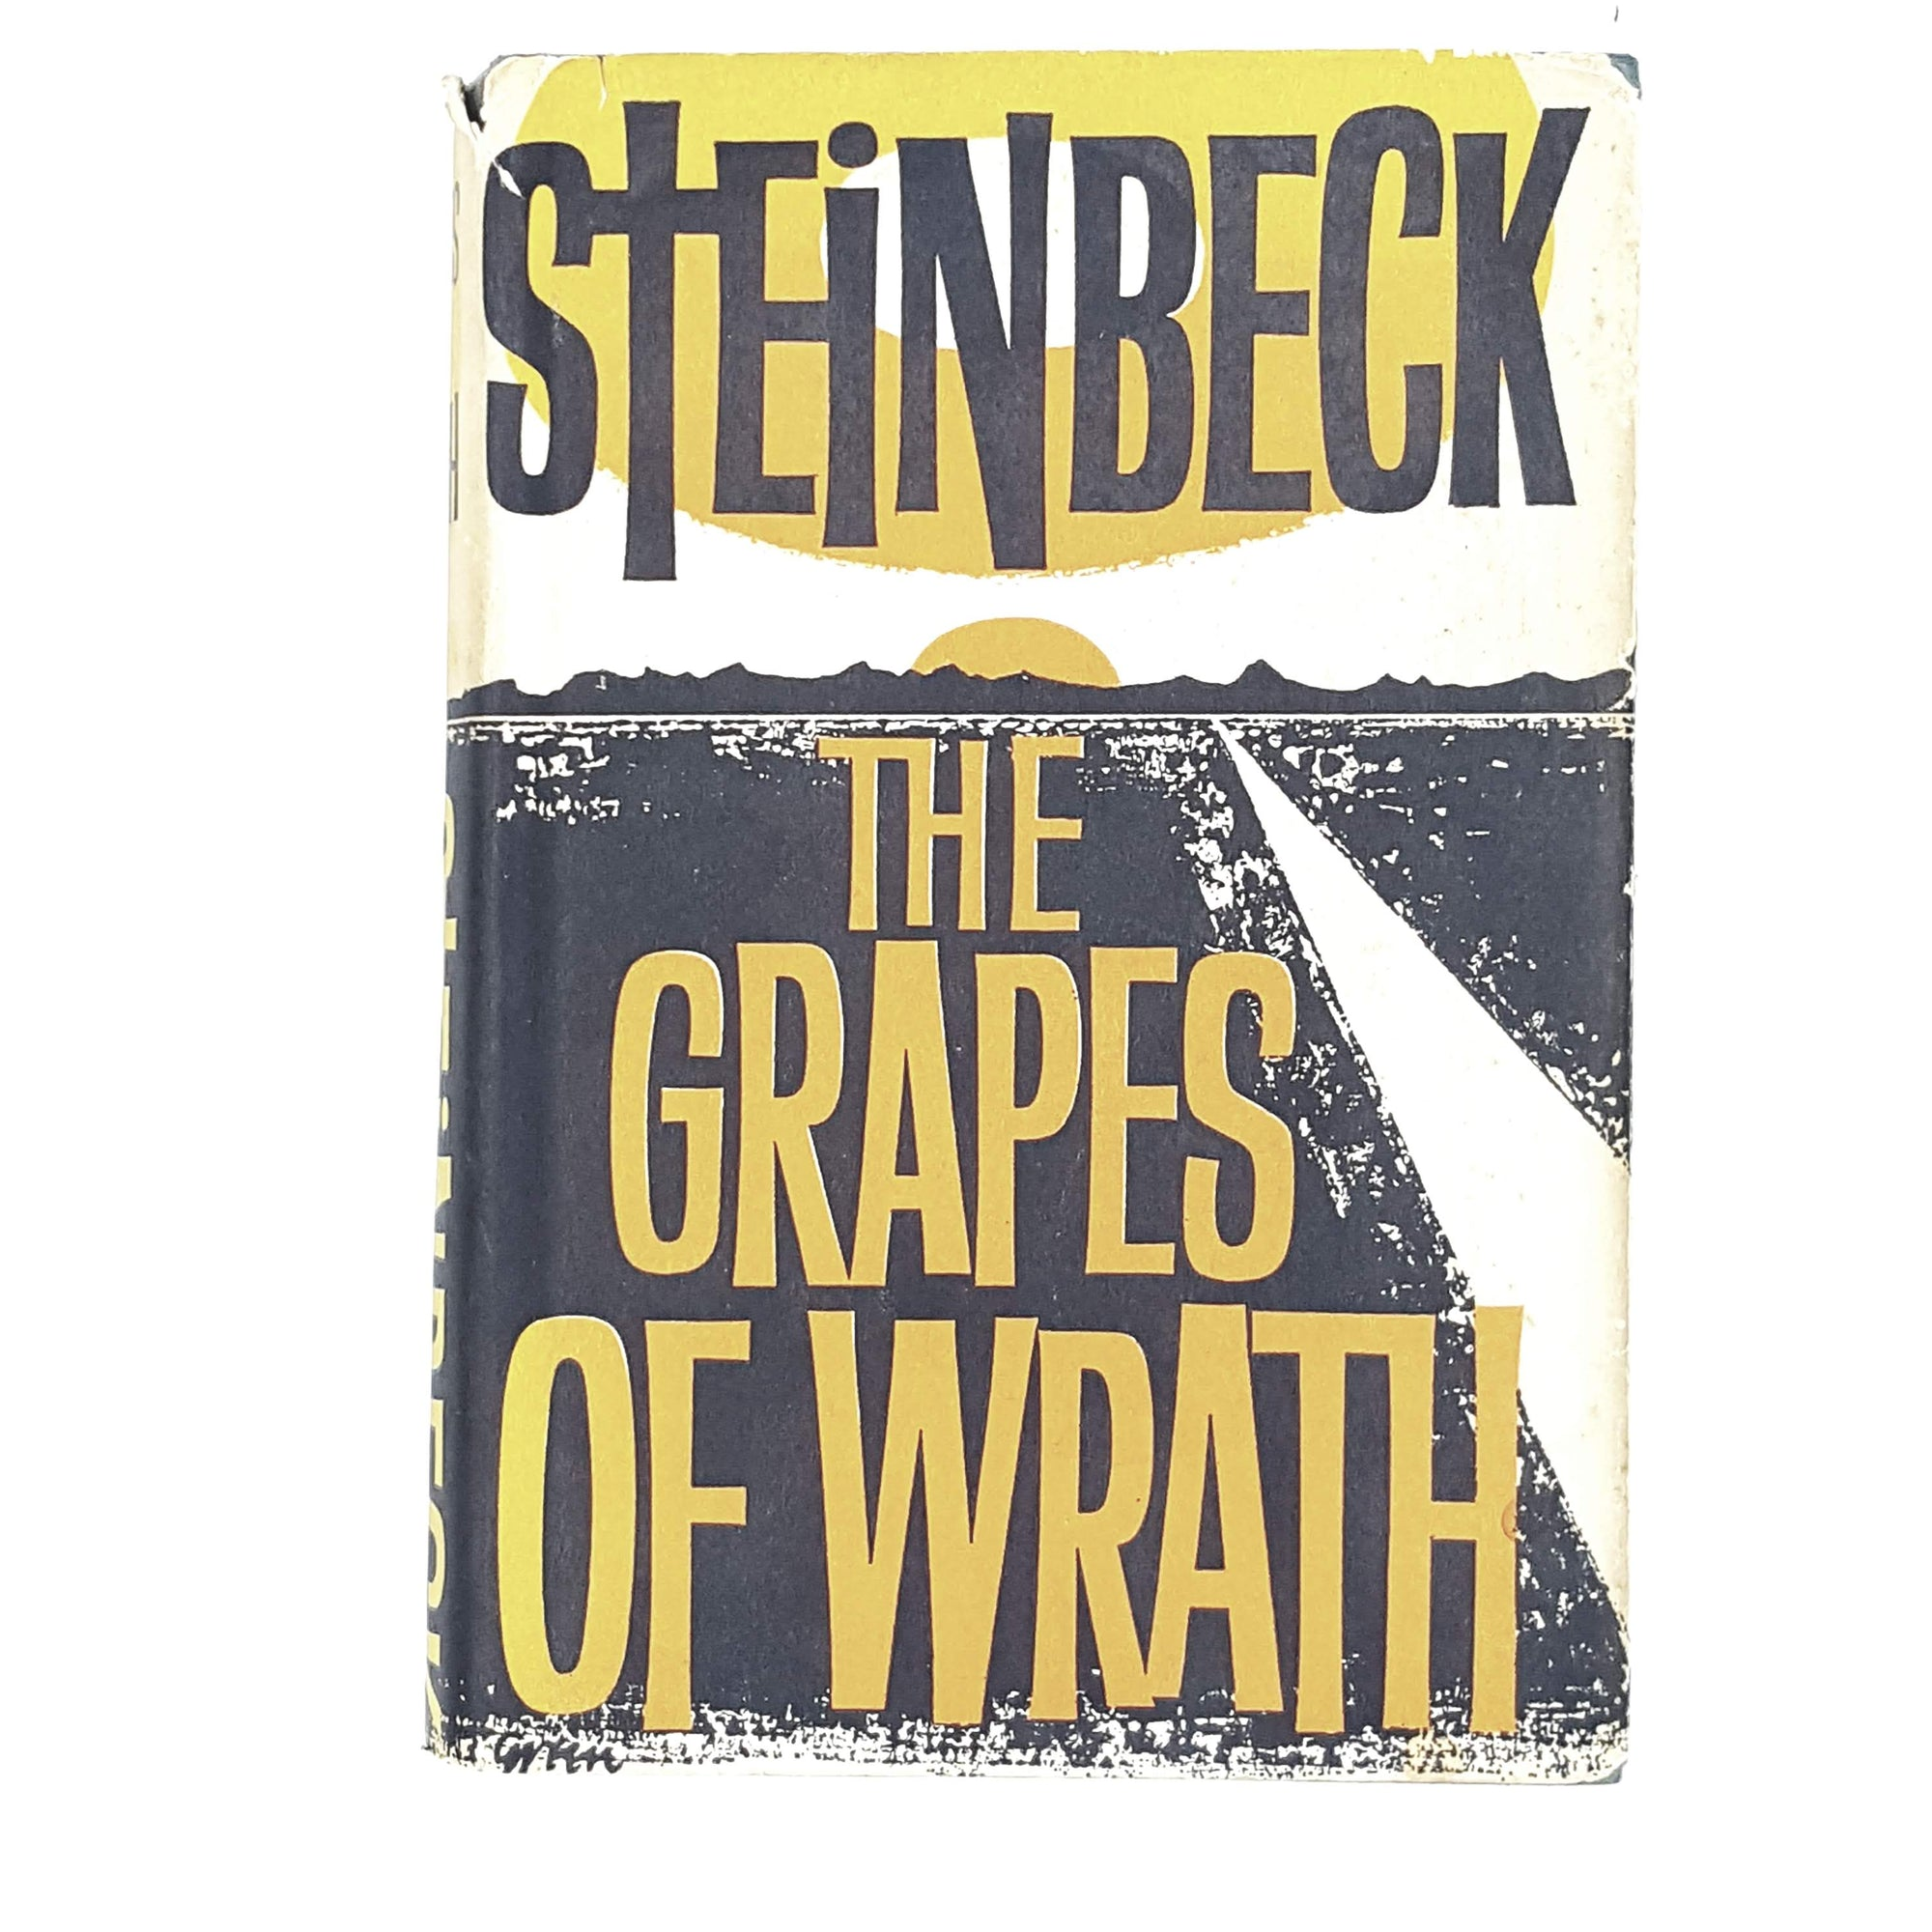 John Steinbeck's The Grapes of Wrath 1963